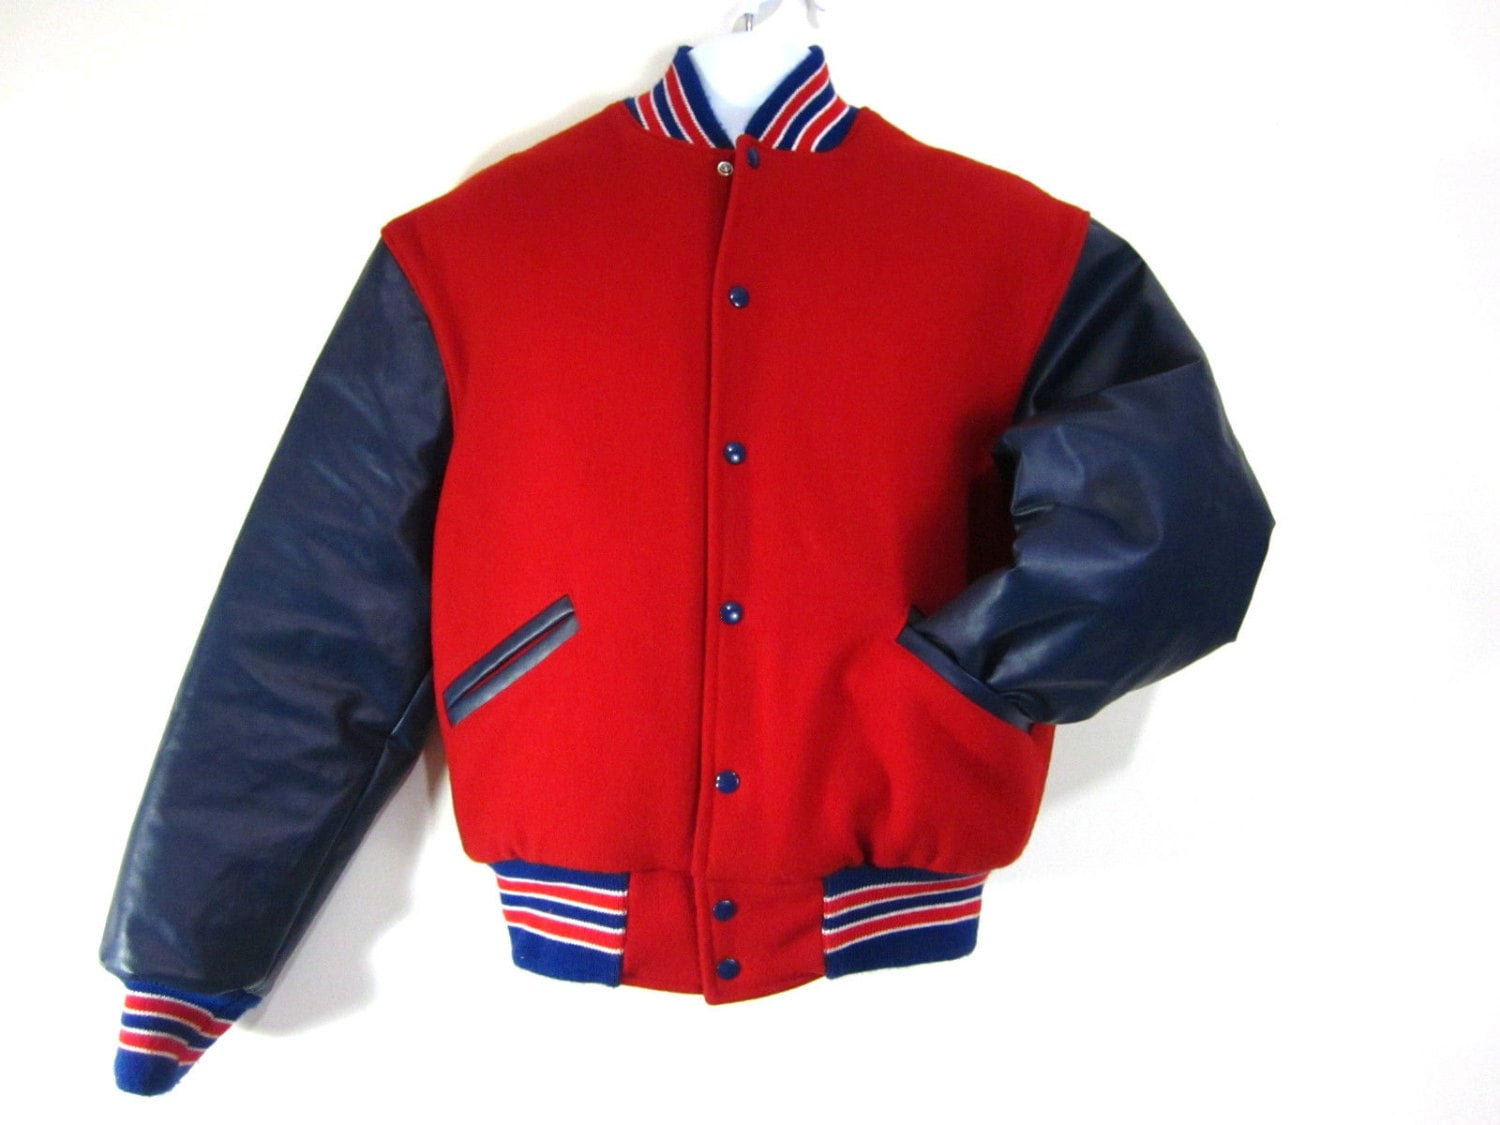 how to get a letterman jacket for academics